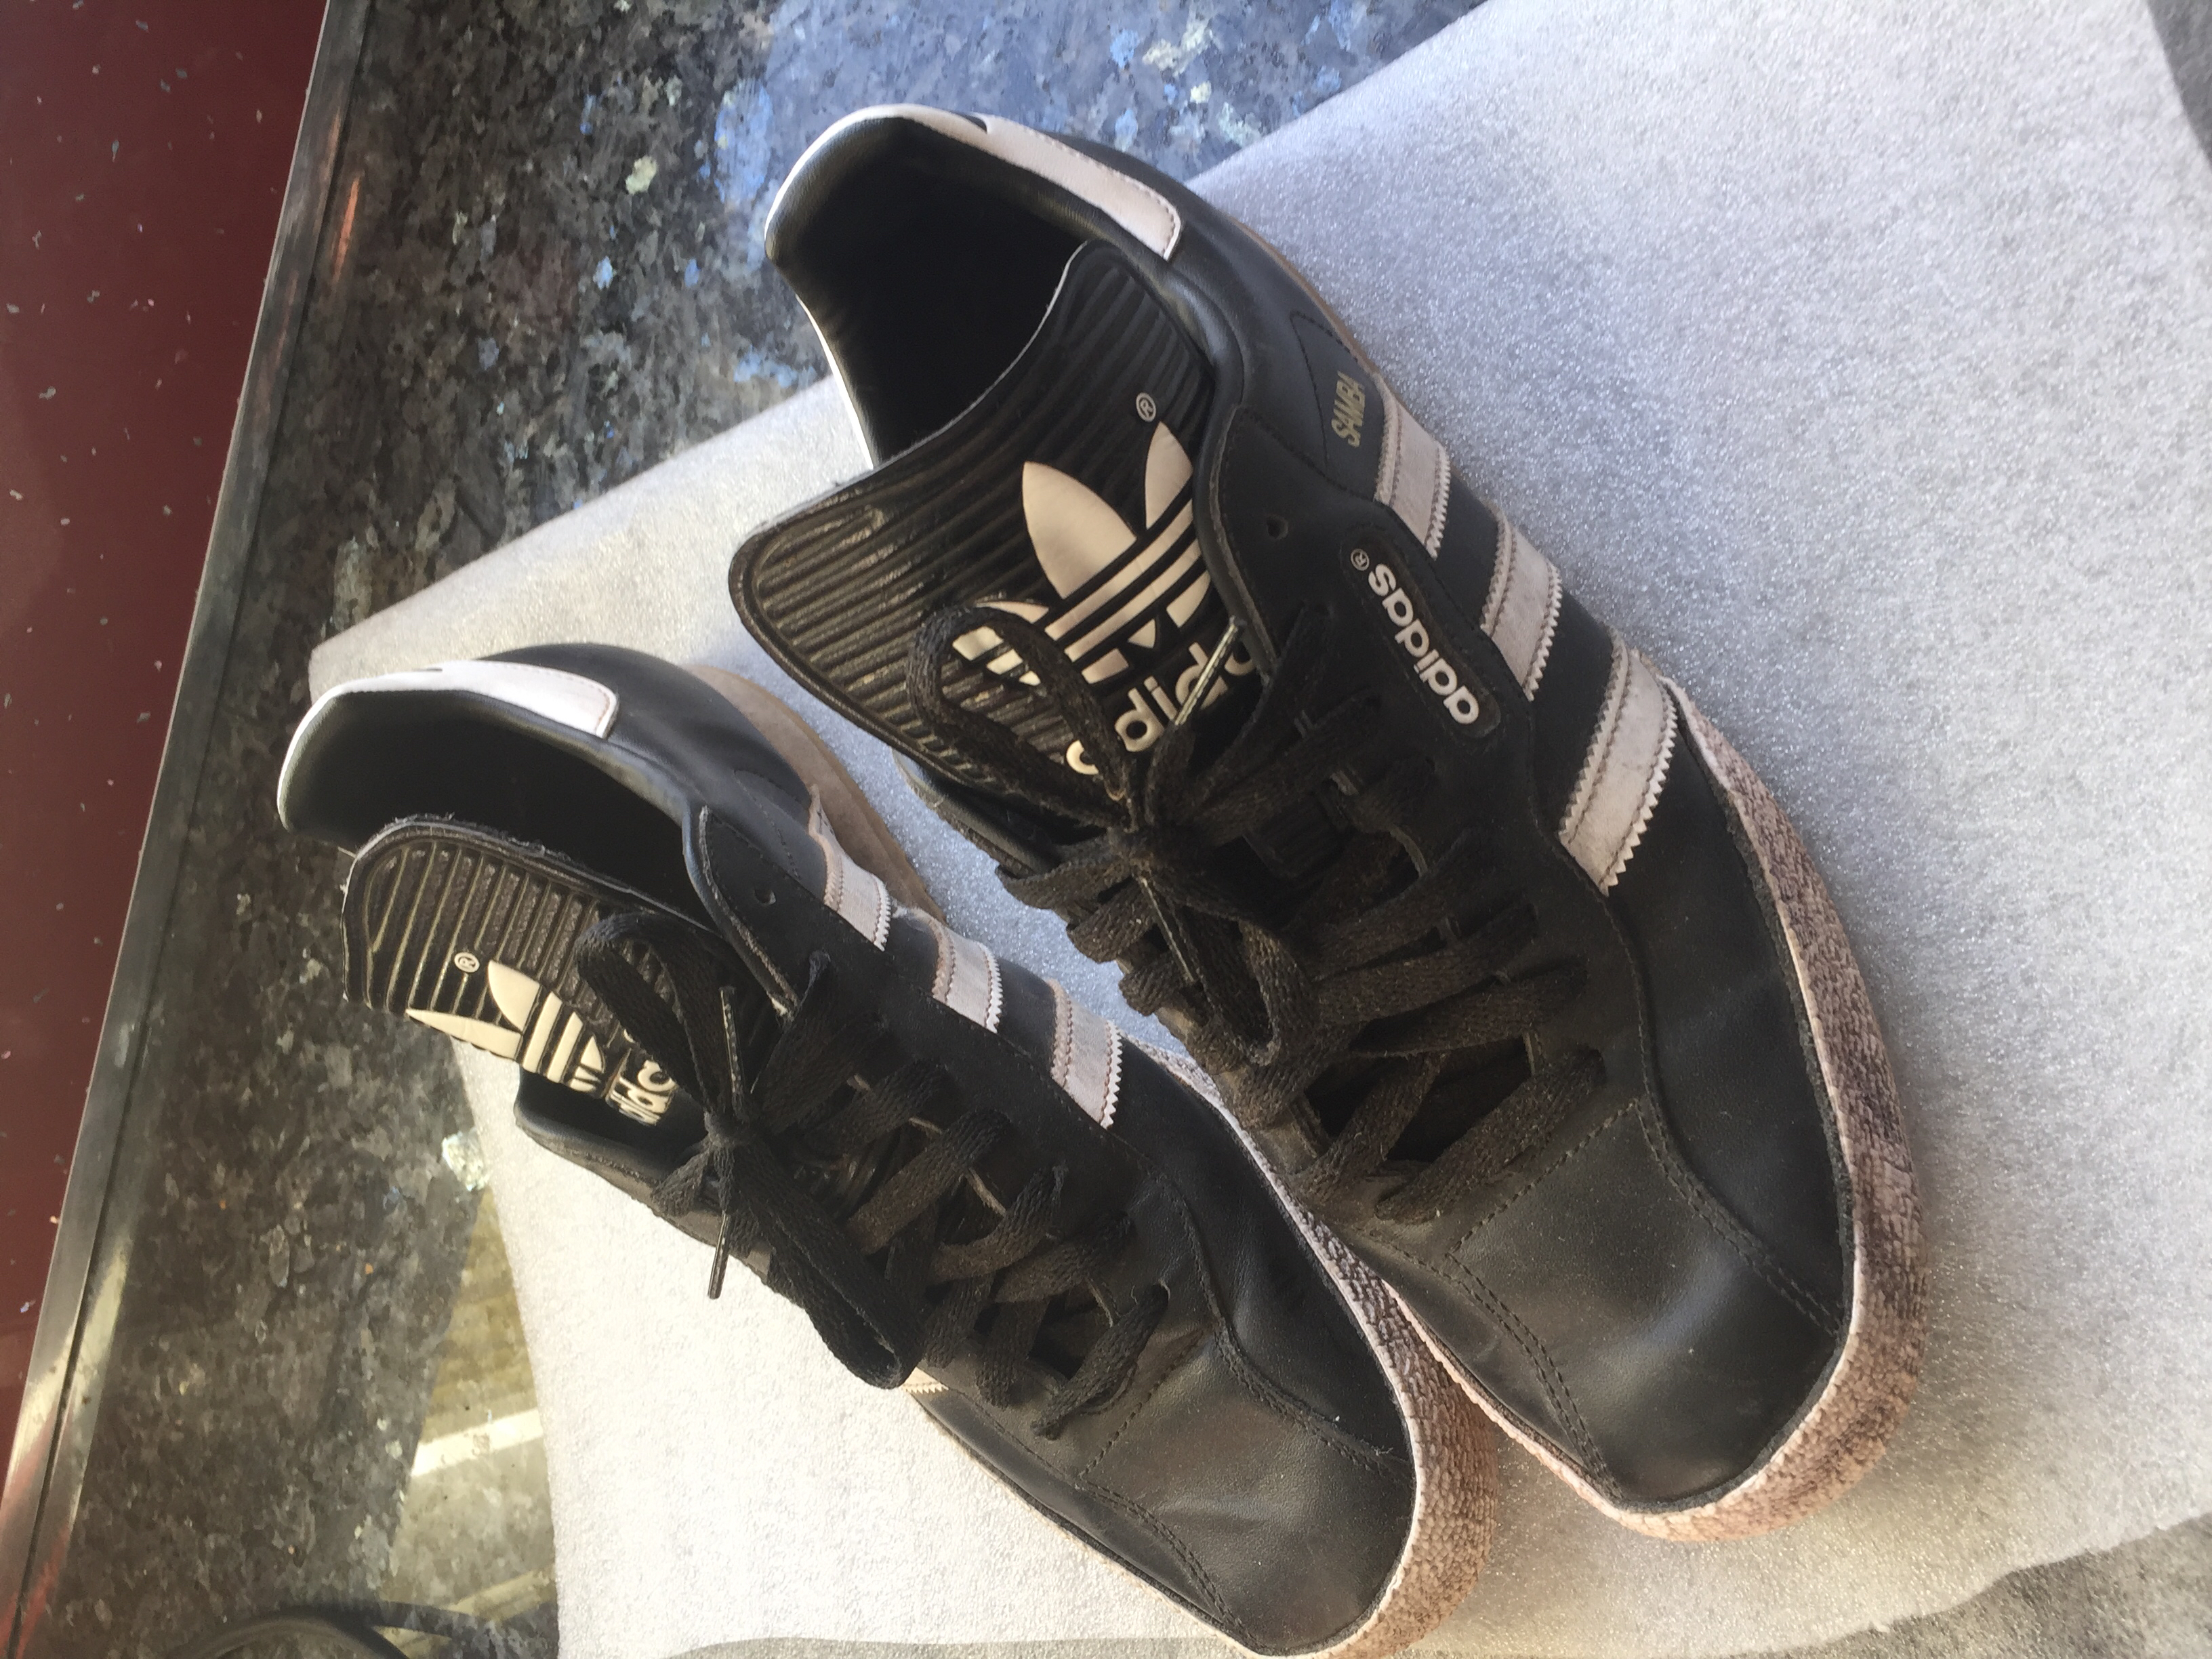 Adidas Samba size 10 For Sale in